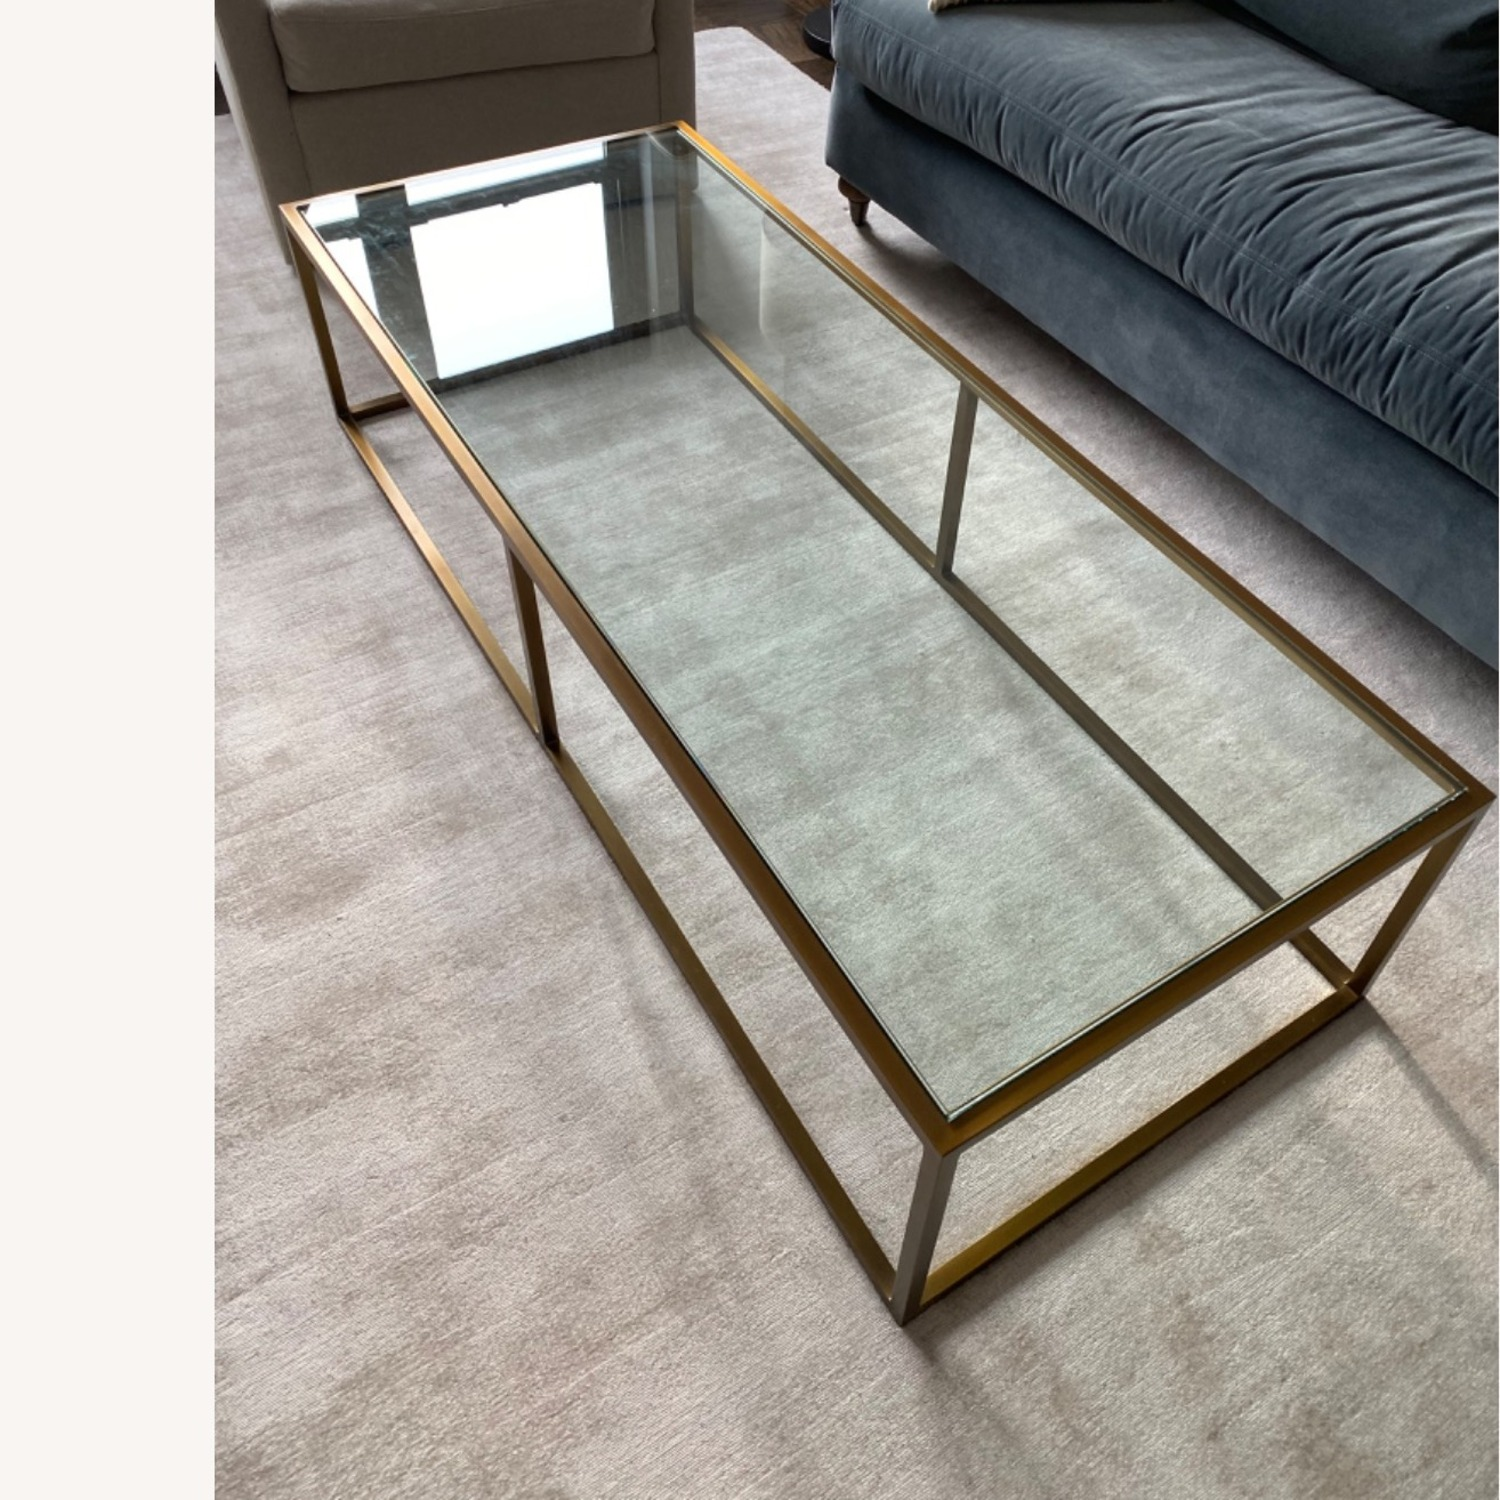 Restoration Hardware Burnished Brass Coffee Table - image-0